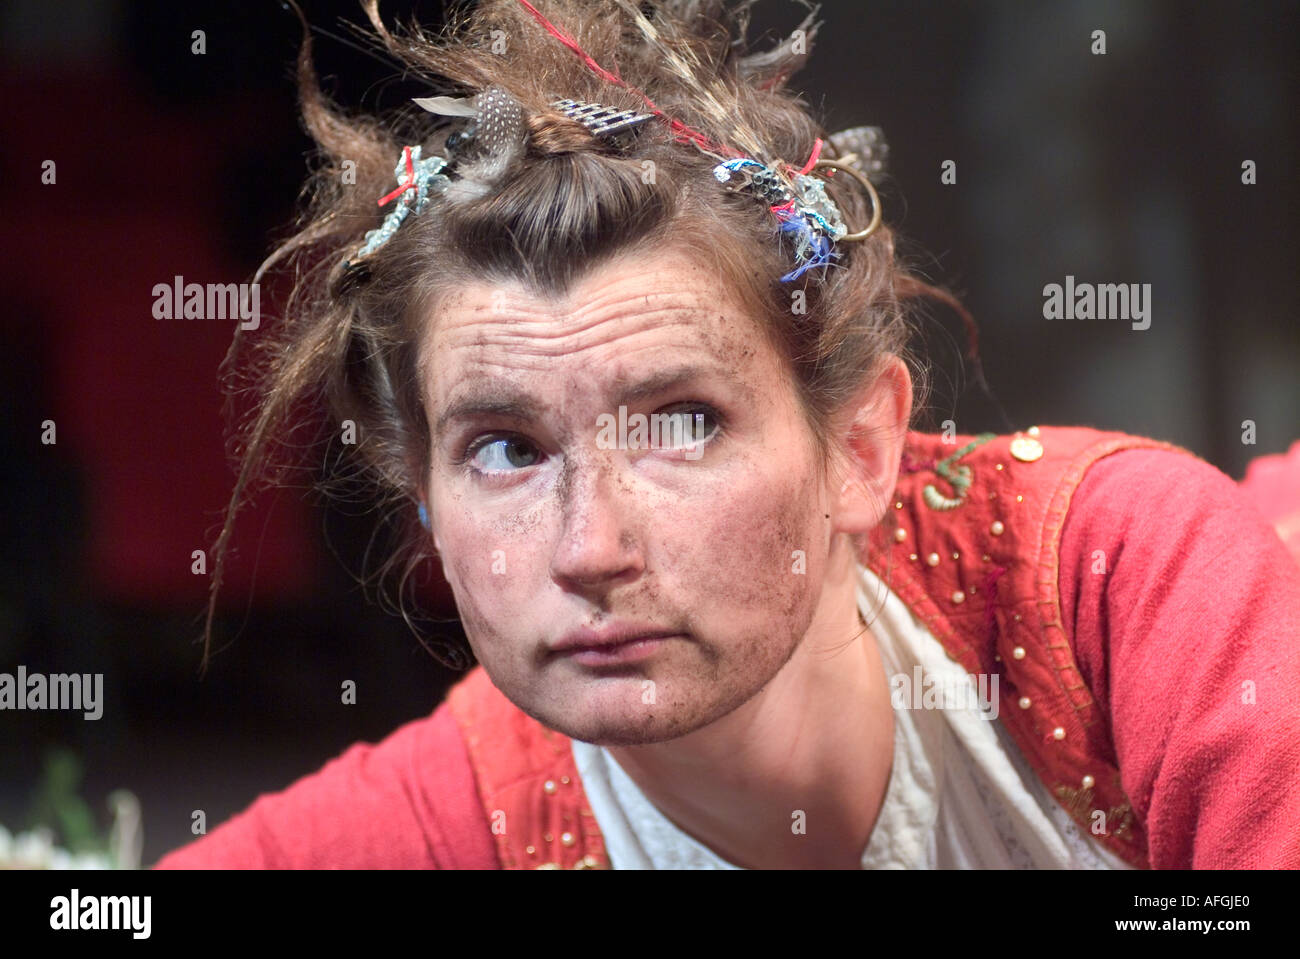 Katherine Tozer playing Pearl in The Scarlet Letter by Phyllis Nagy 1994 adapted from the novel by Nathaniel Hawthorne 1850. - Stock Image